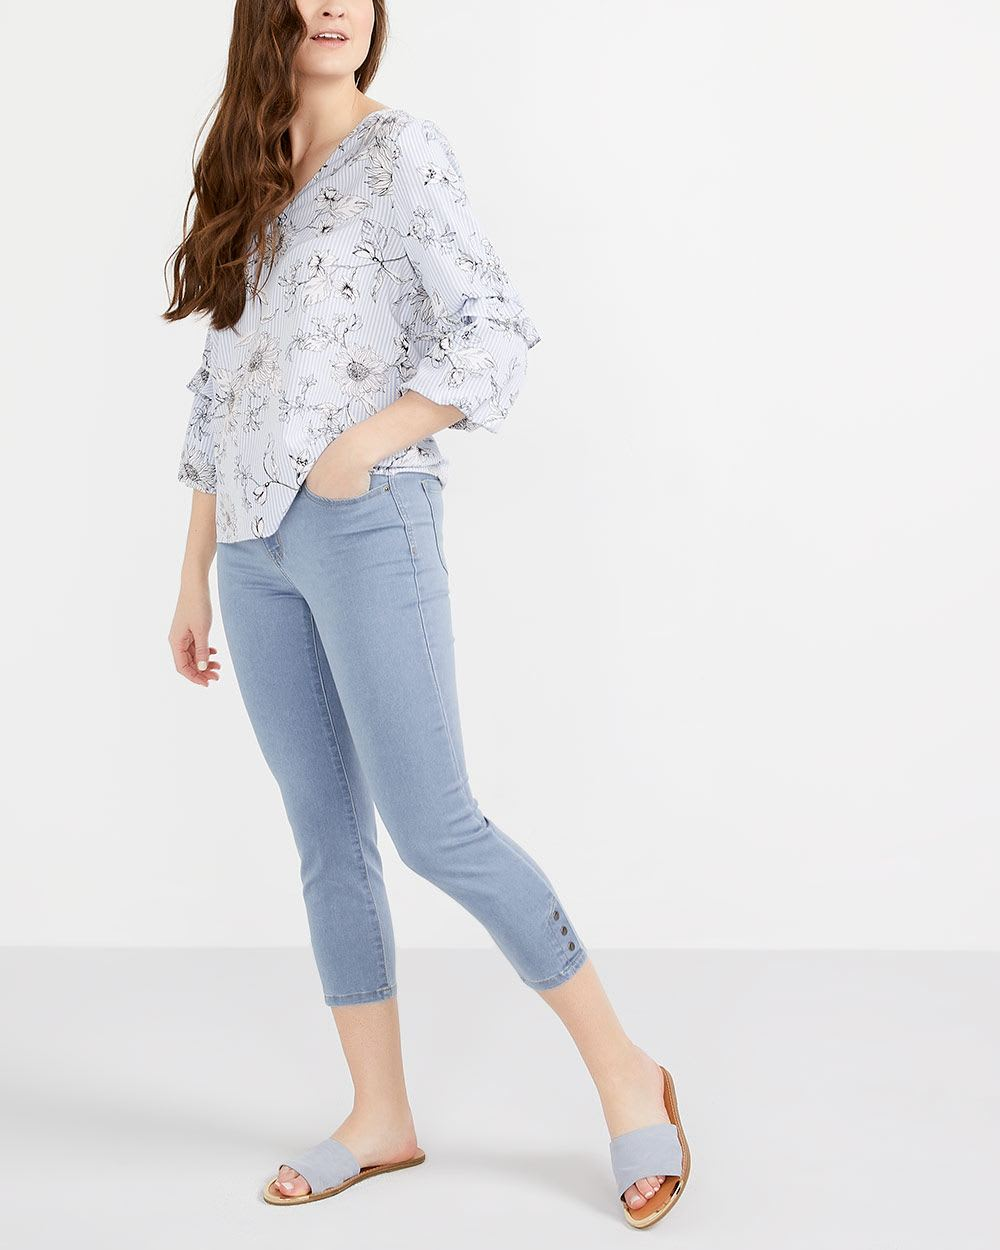 The Signature Soft Cropped Jeans with Snaps